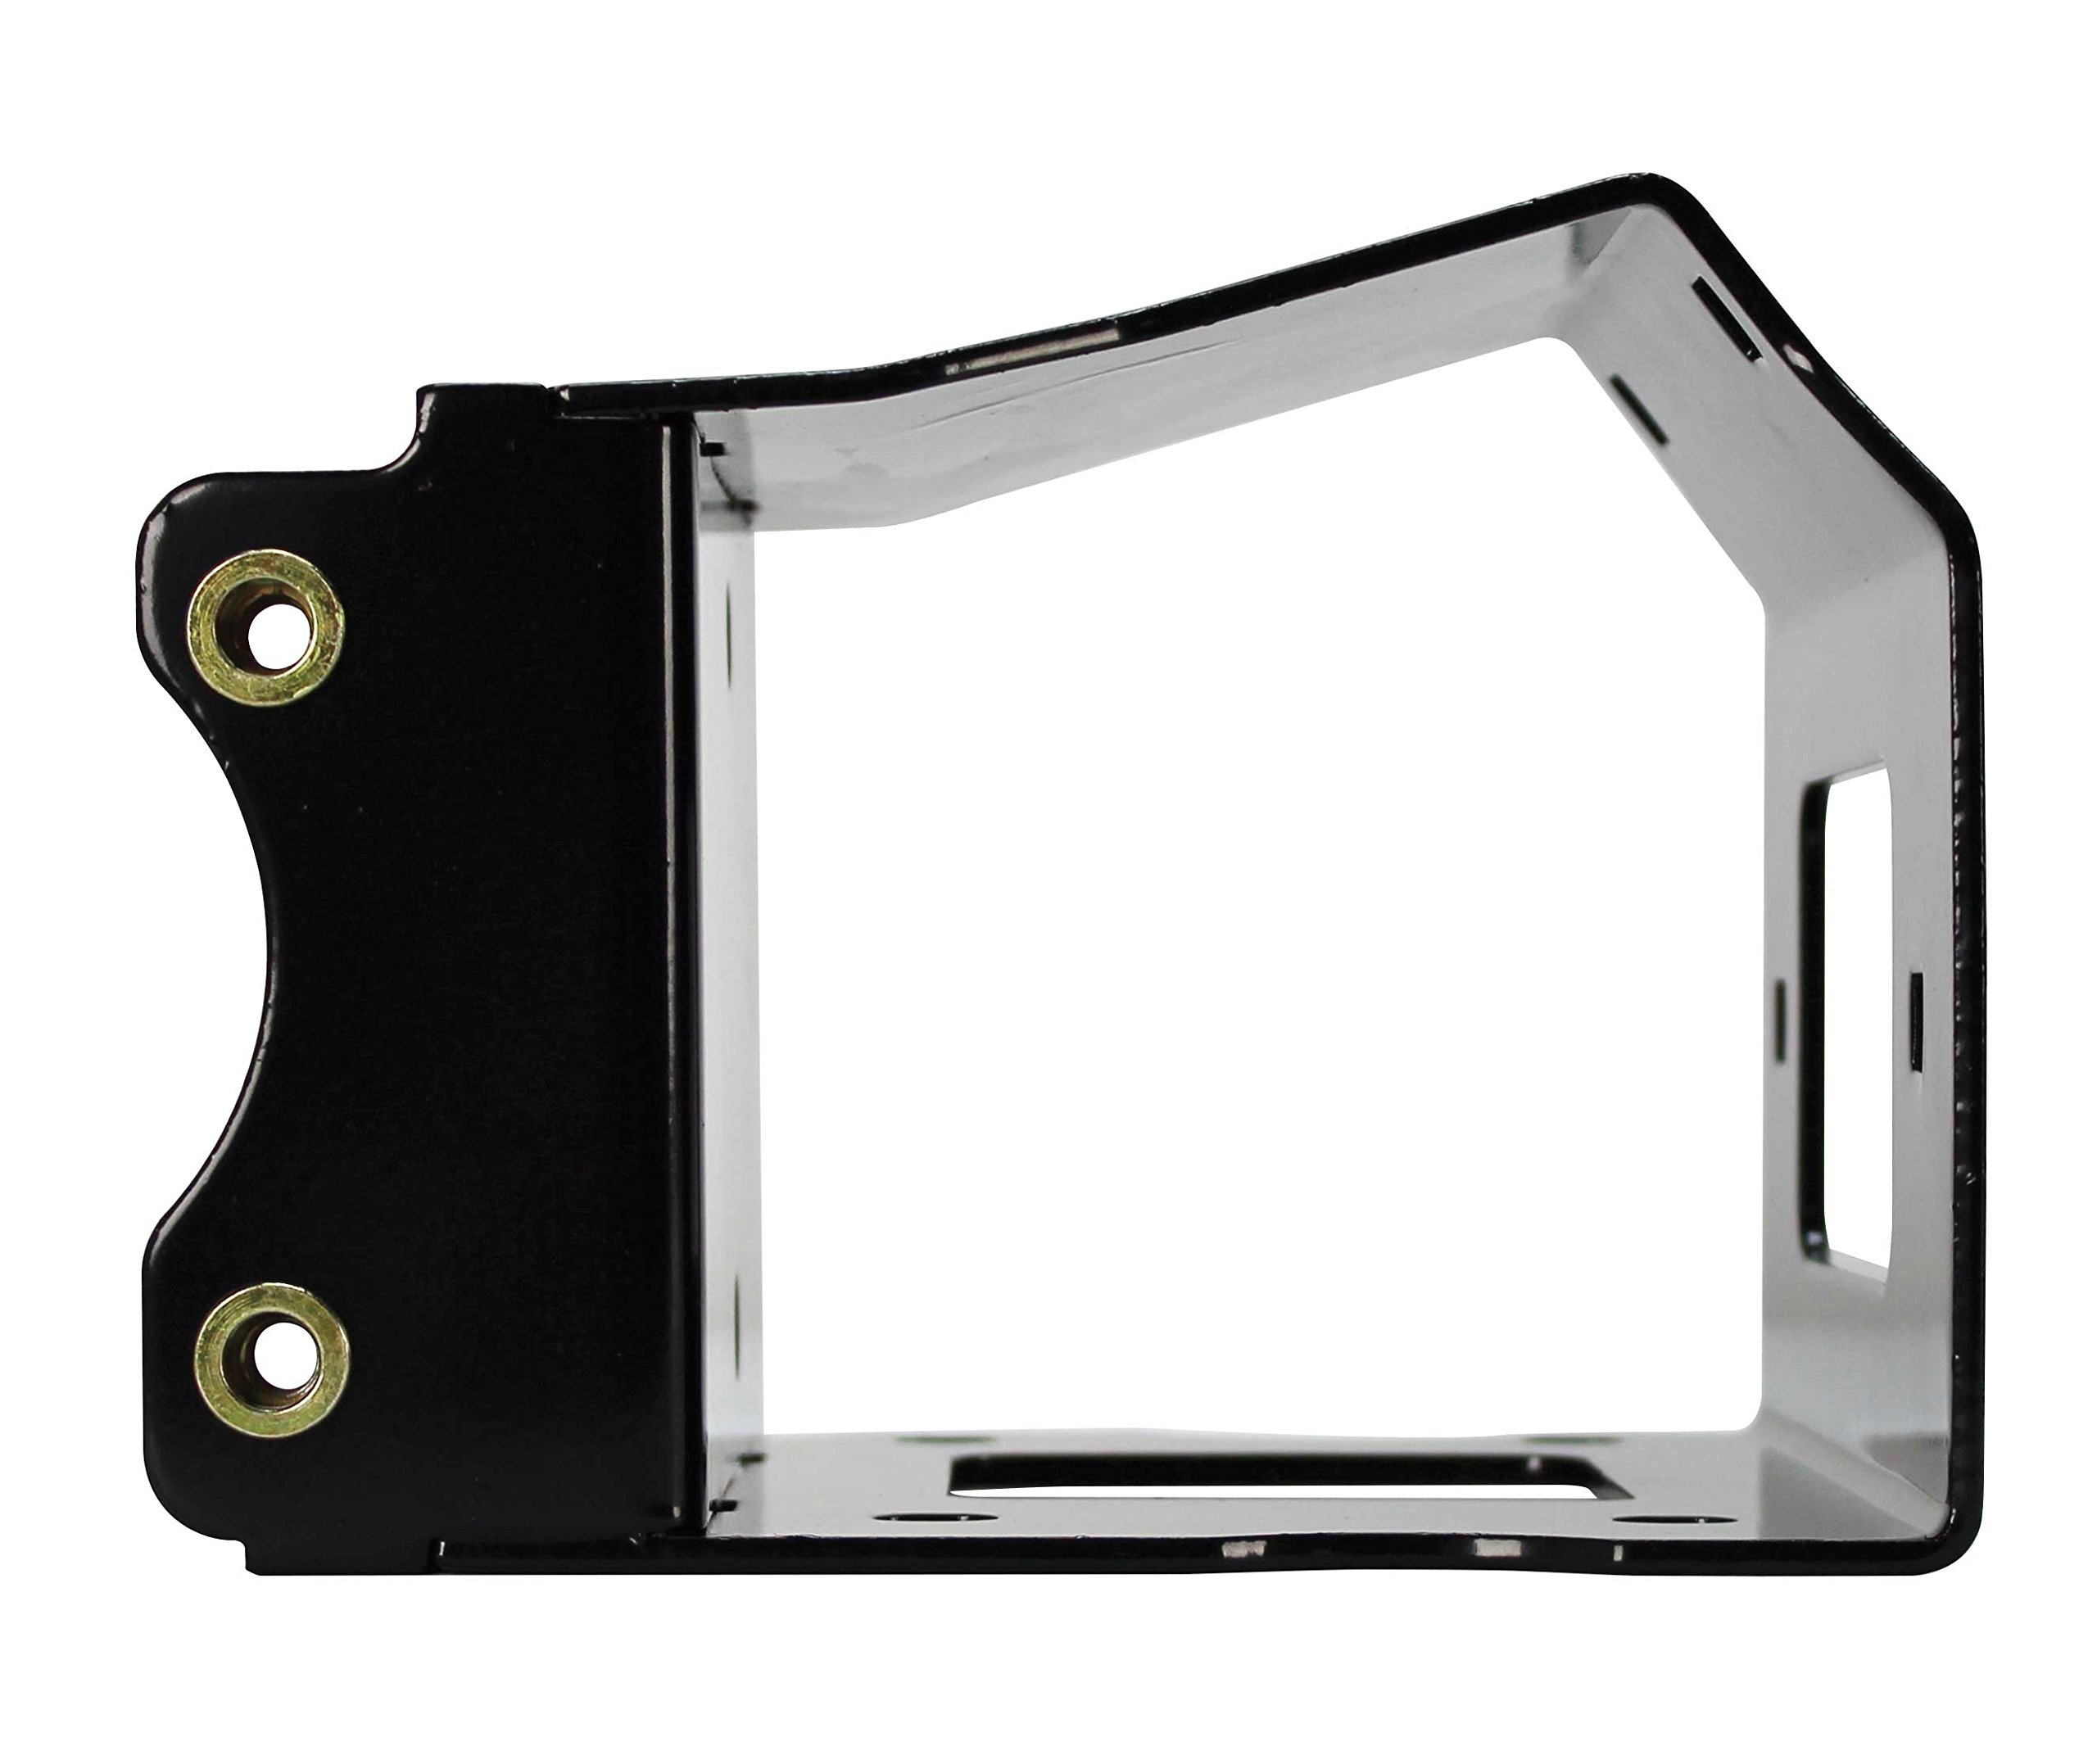 Extreme Max 5600.3160 ATV Winch Mount for Polaris Sportsman by Extreme Max (Image #5)